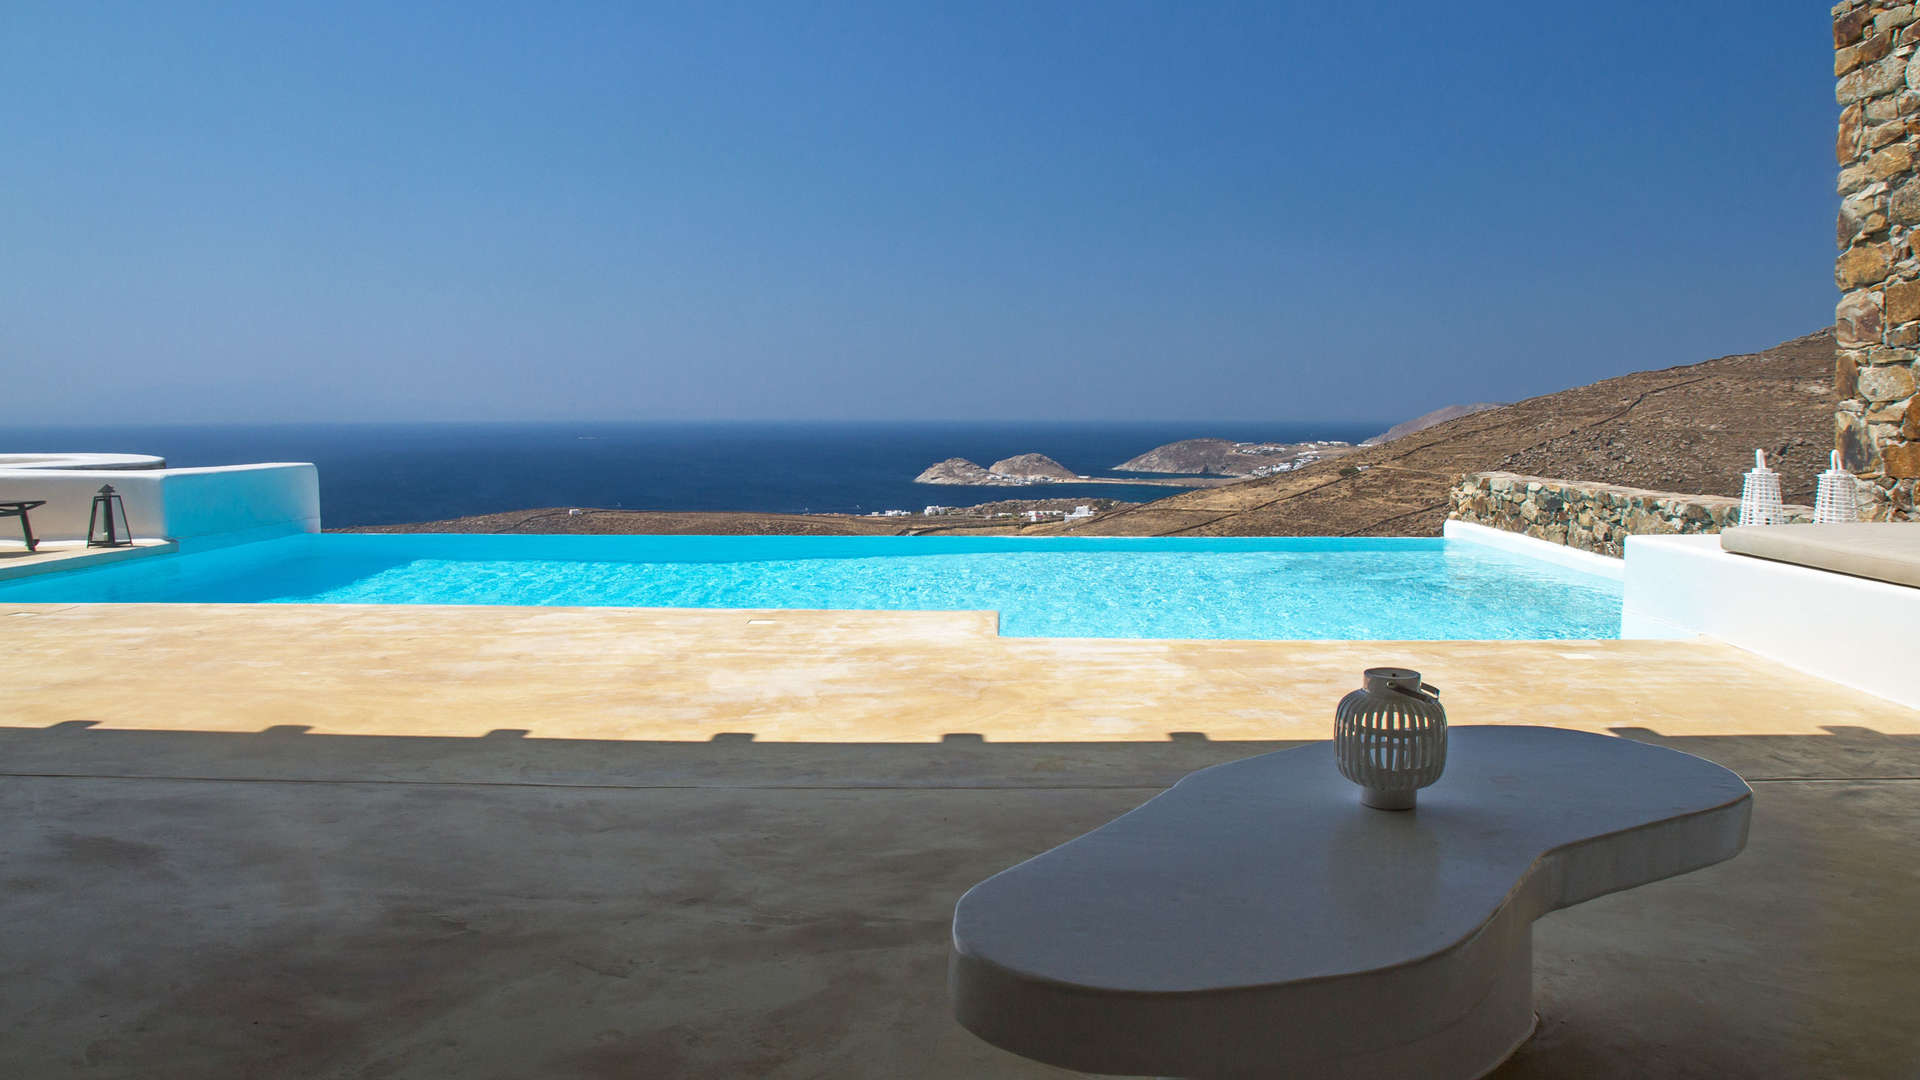 Luxury vacation rentals europe - Greece - Mykonos - Lia - Minerva - Image 1/10